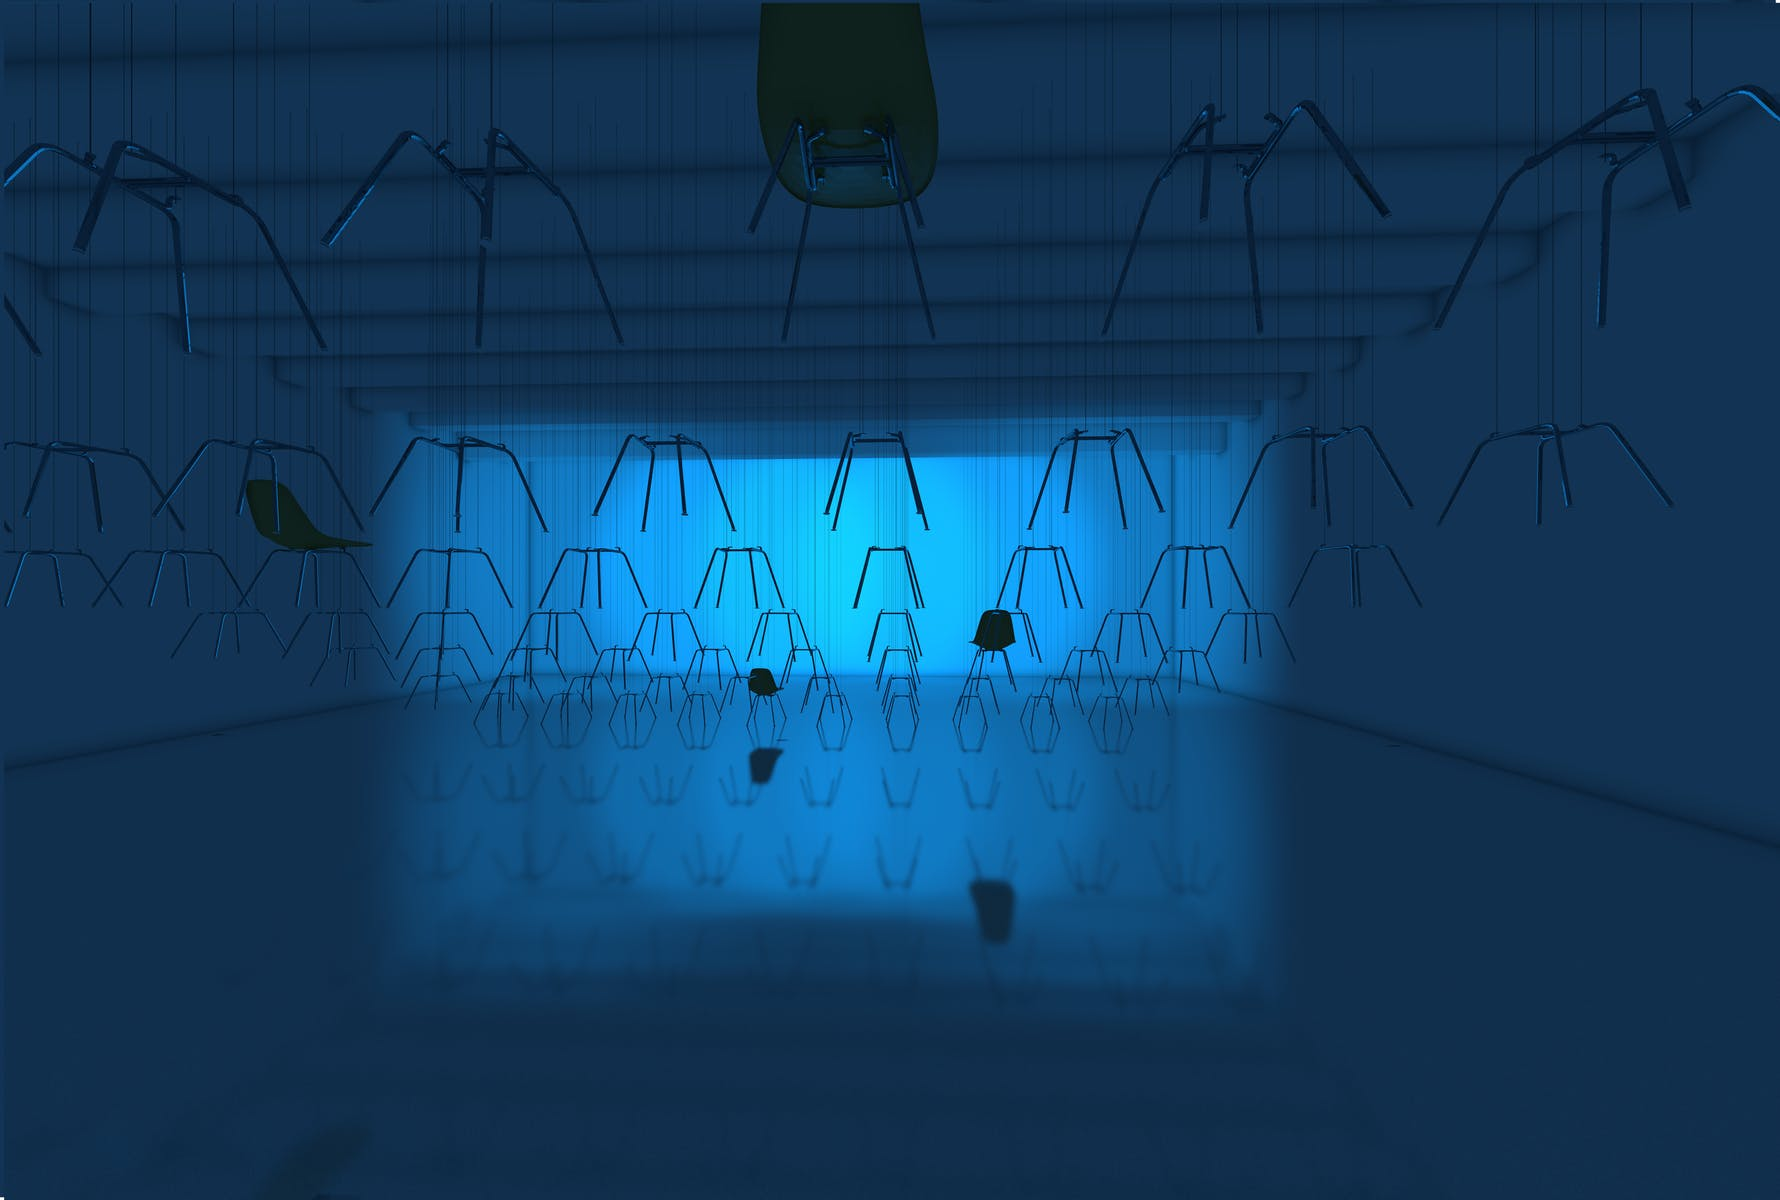 Gallery bathed in blue light with dozens of chair legs hanging from the cieling